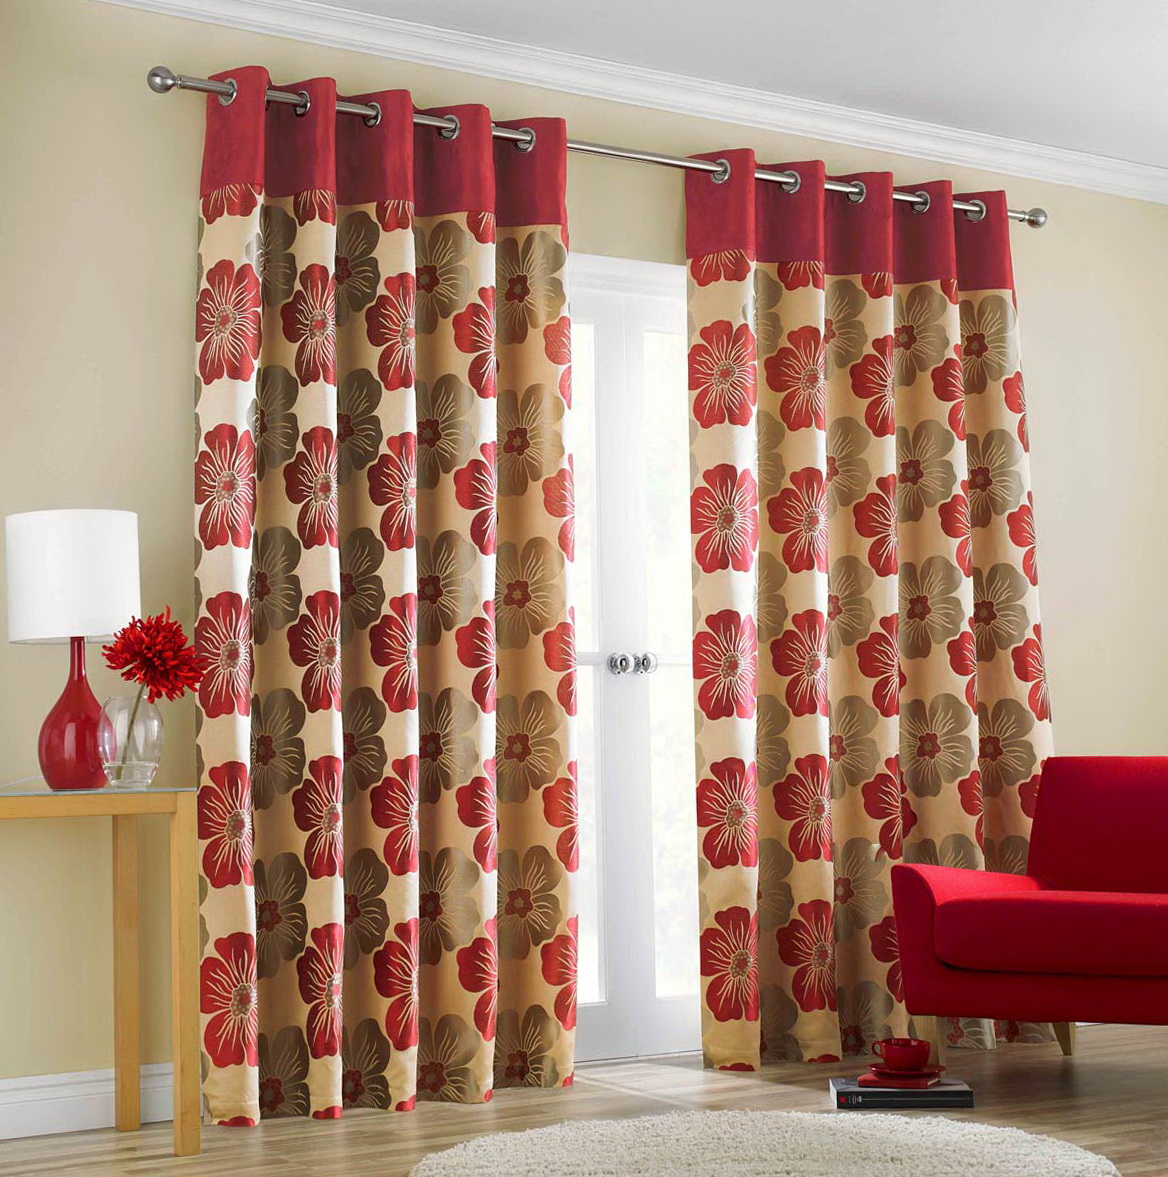 Red Patterned Curtain Panels Home Design Ideas